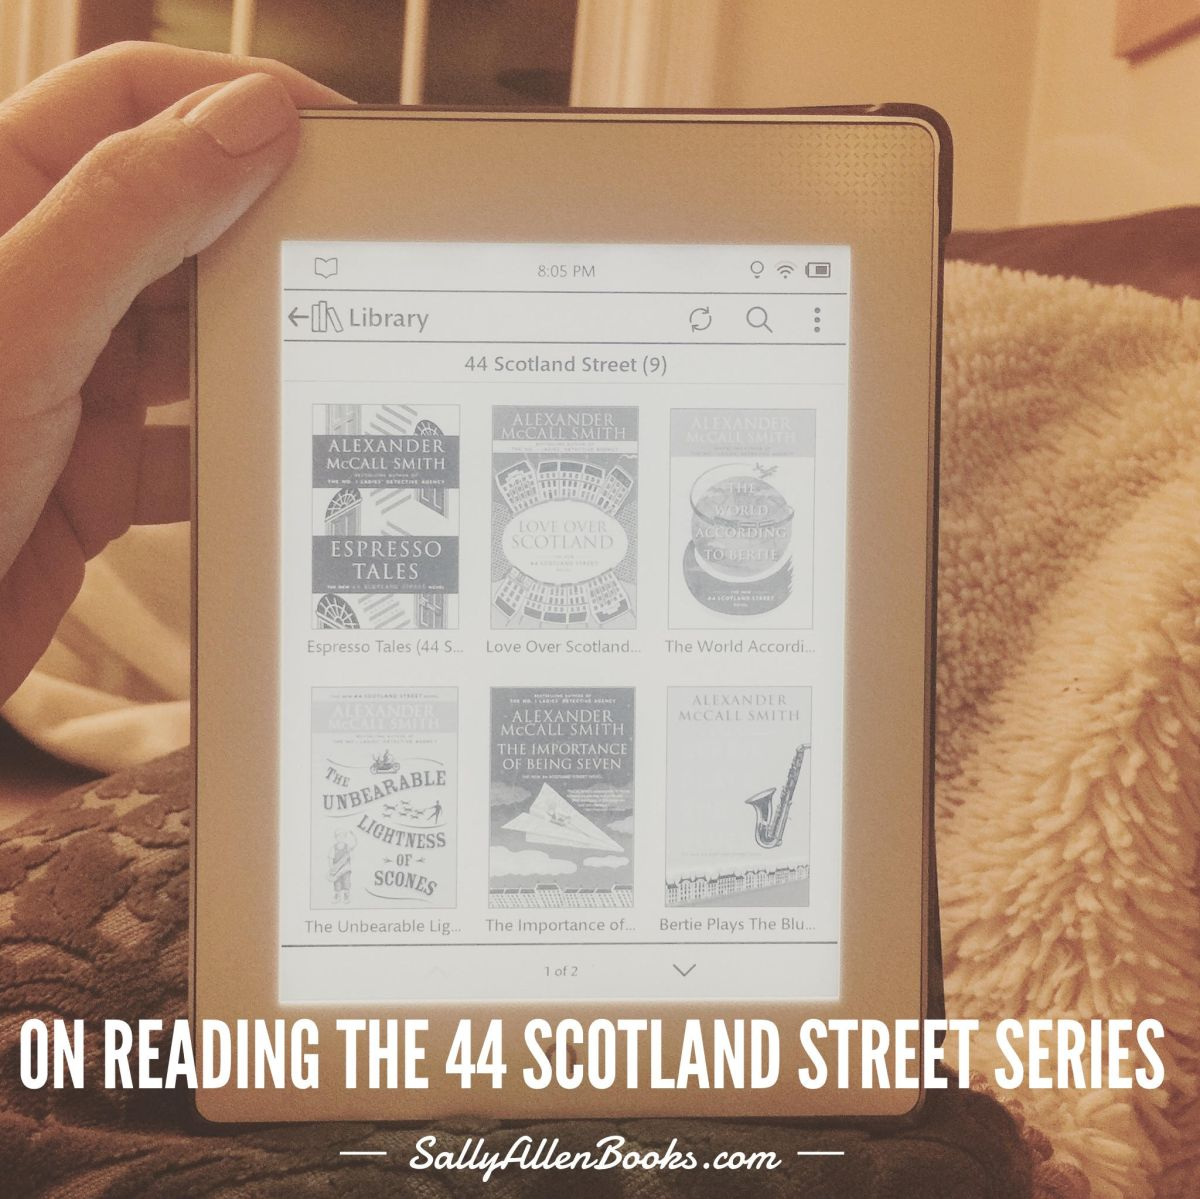 Thoughts on reading book 11 in 44 Scotland Street